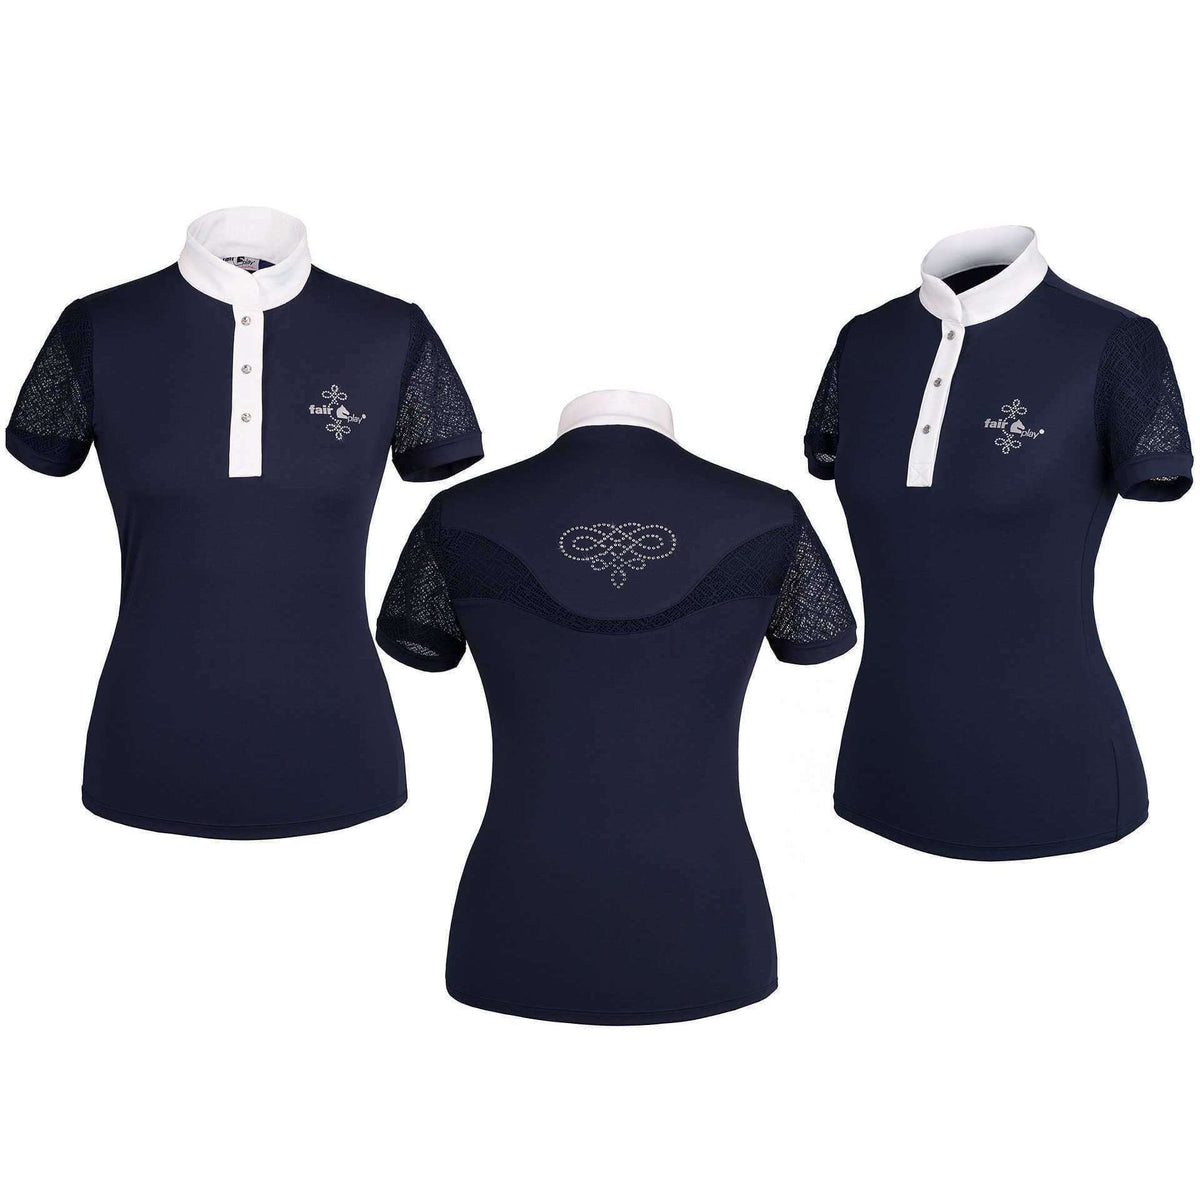 FairPlay Short Sleeved Lace Competition Shirt 2.0